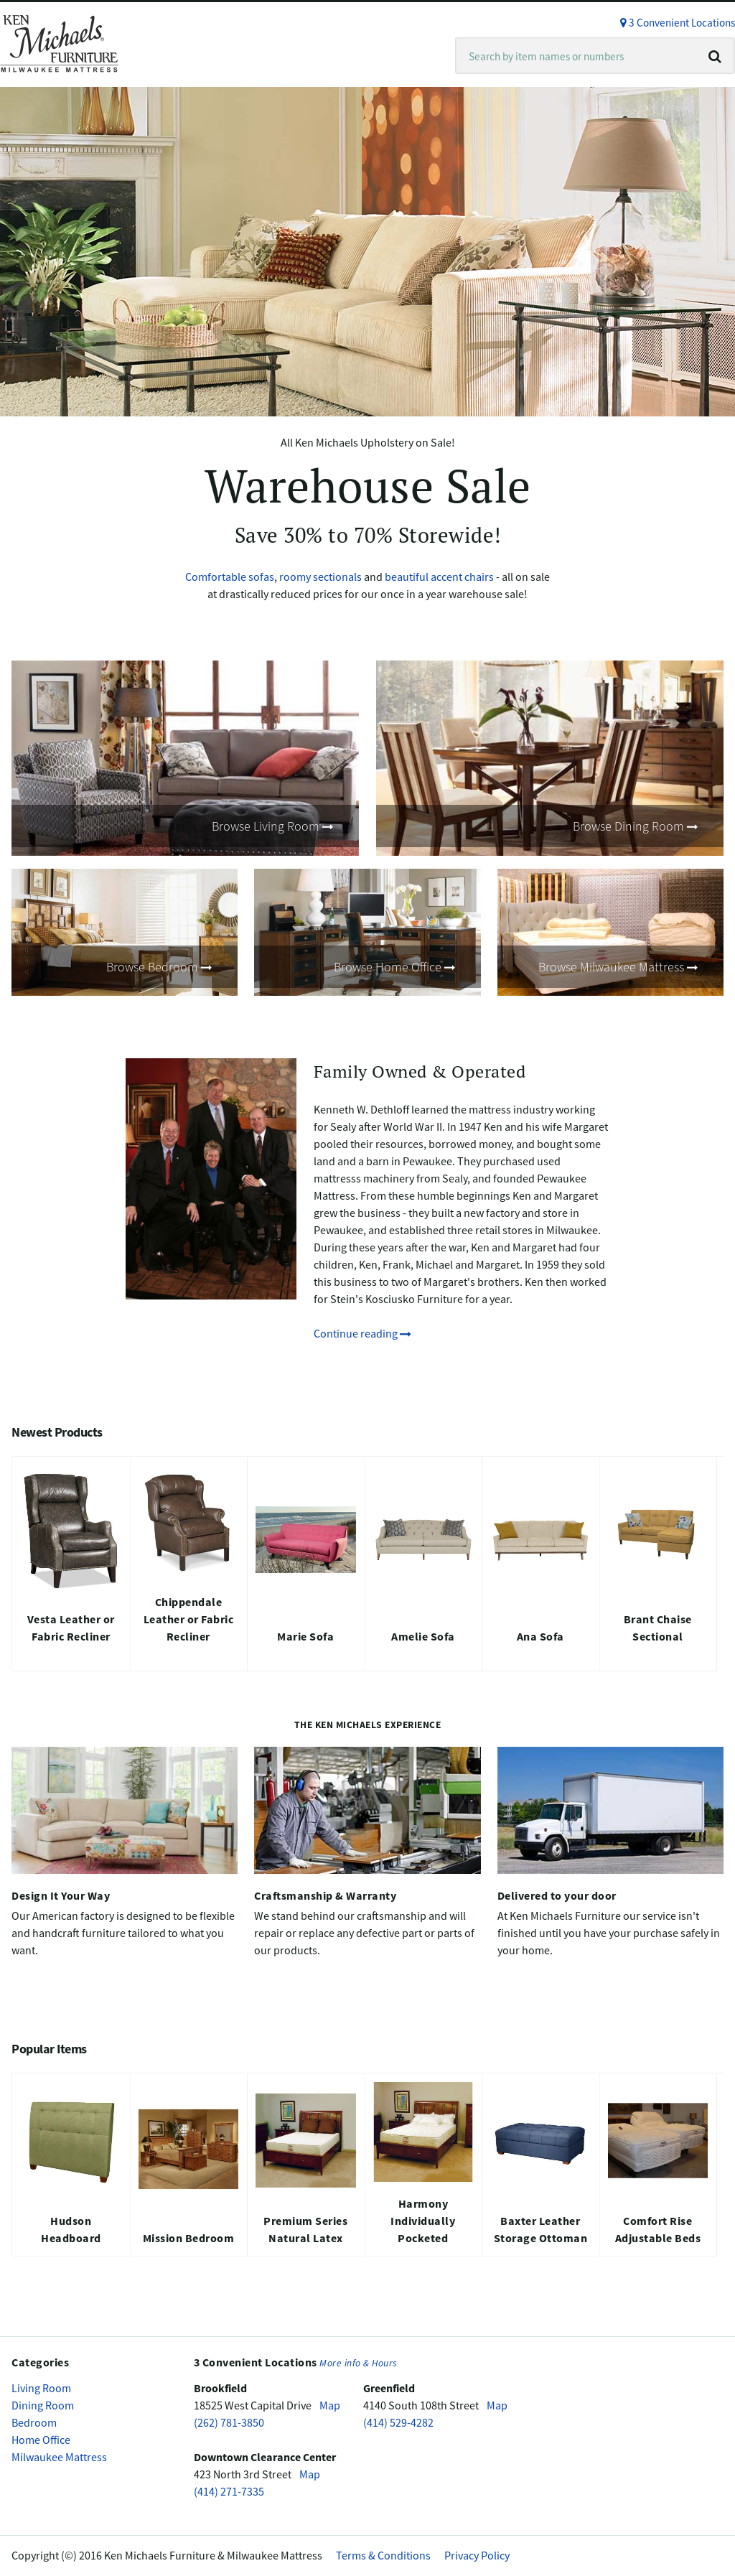 Bon Ken Michaels Furniture Website History